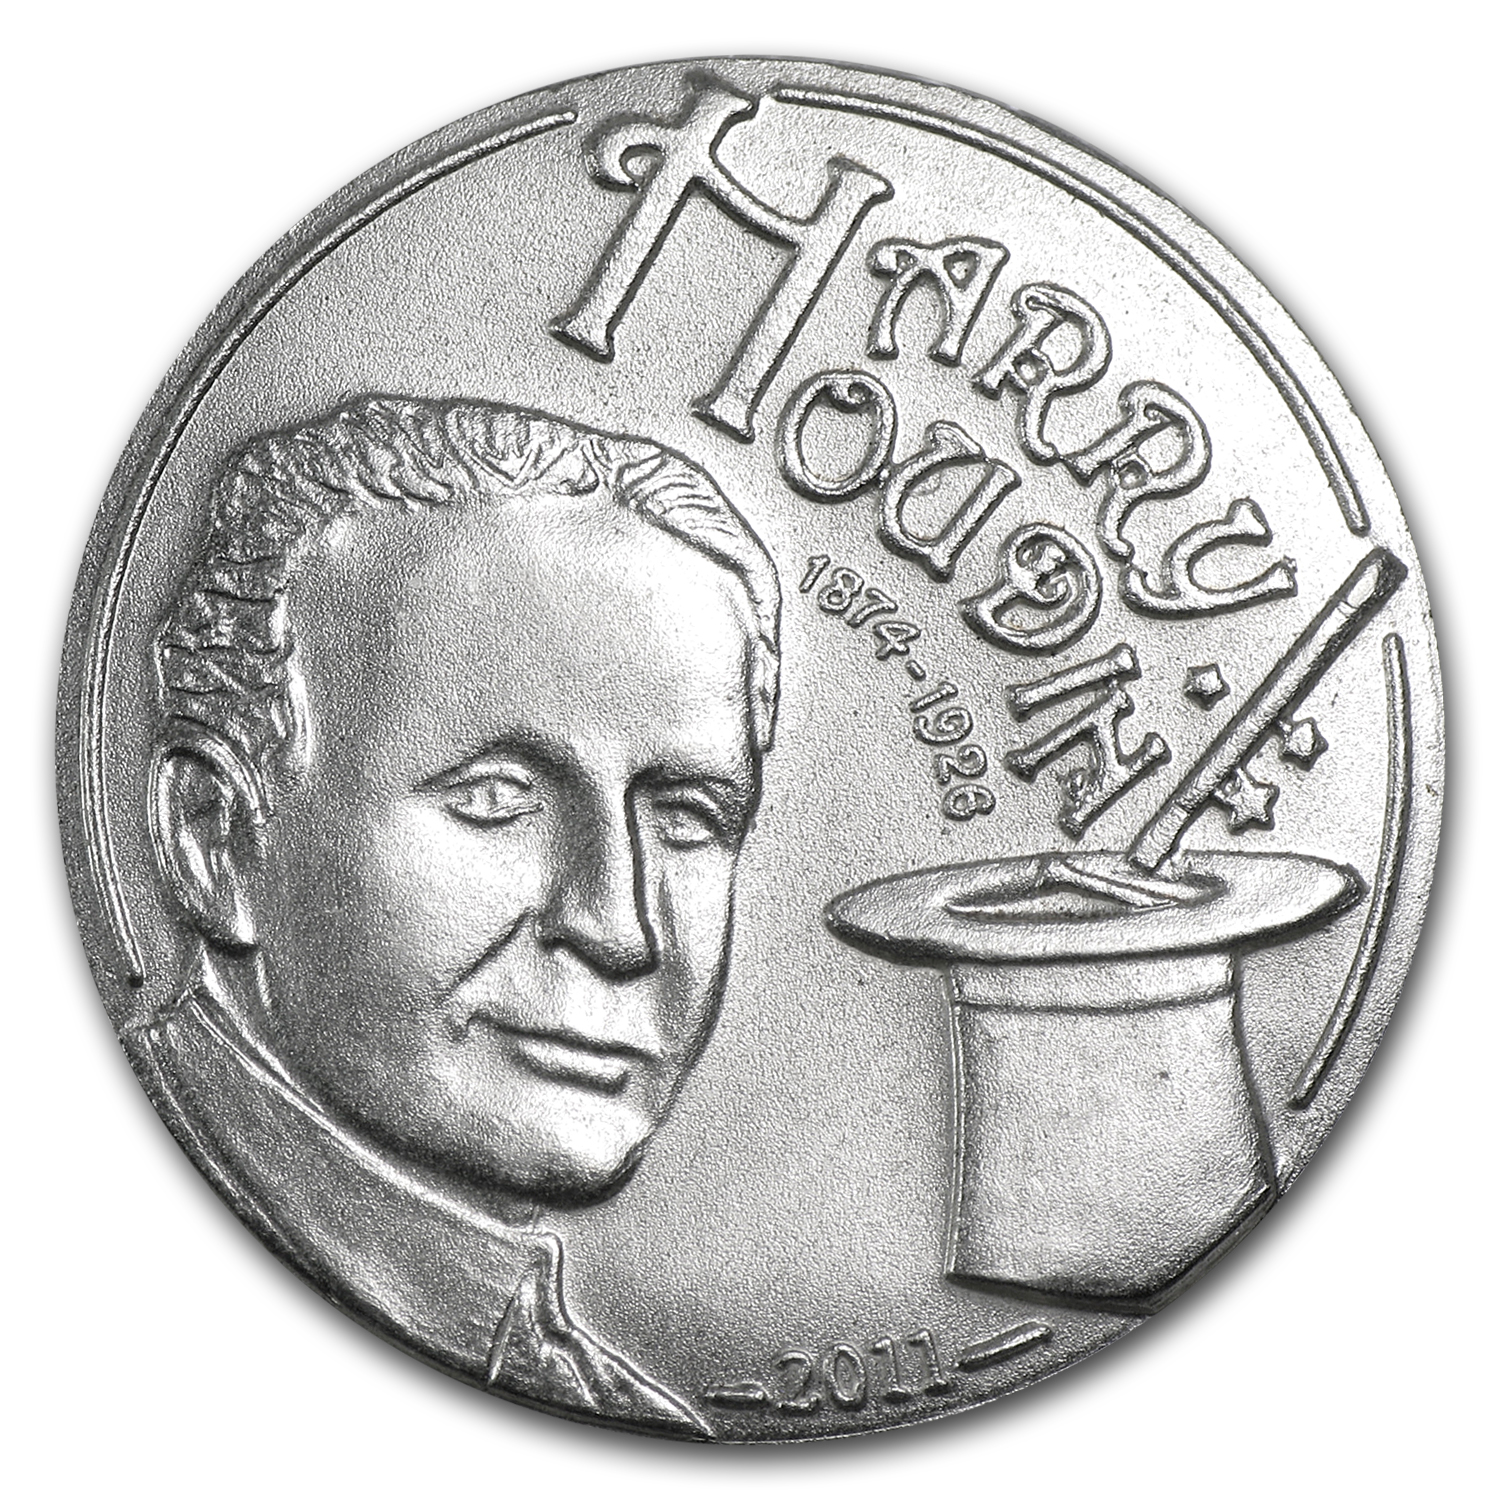 Palau 2011 CuNi $1 Harry Houdini Coin with a Magic Coin Box